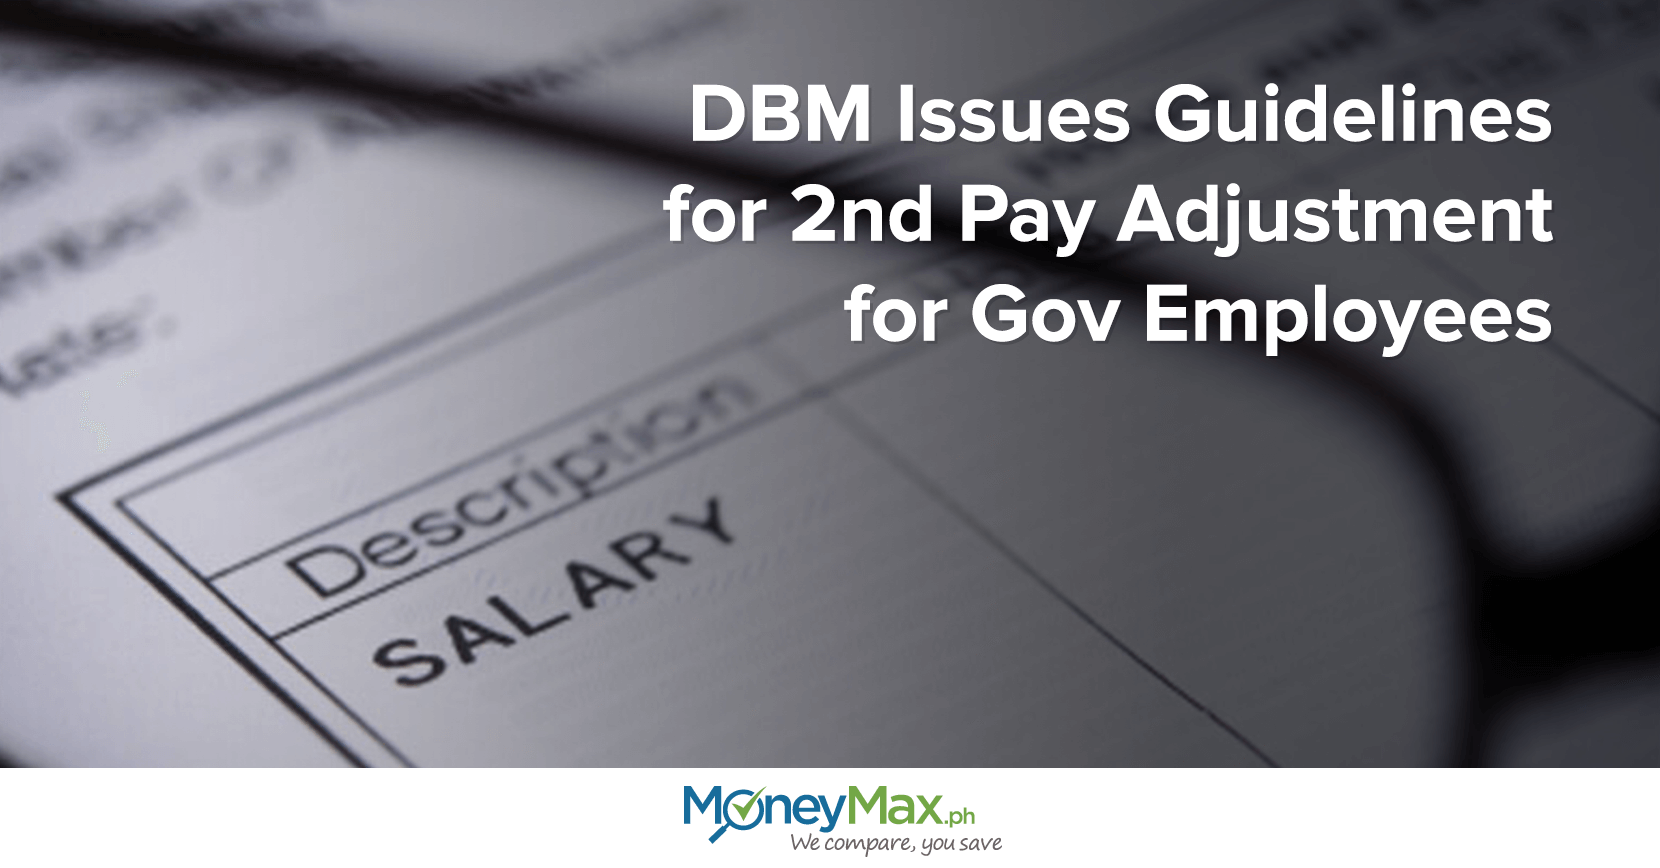 DBM Issues guidelines for 2nd pay adjustment for gov employees